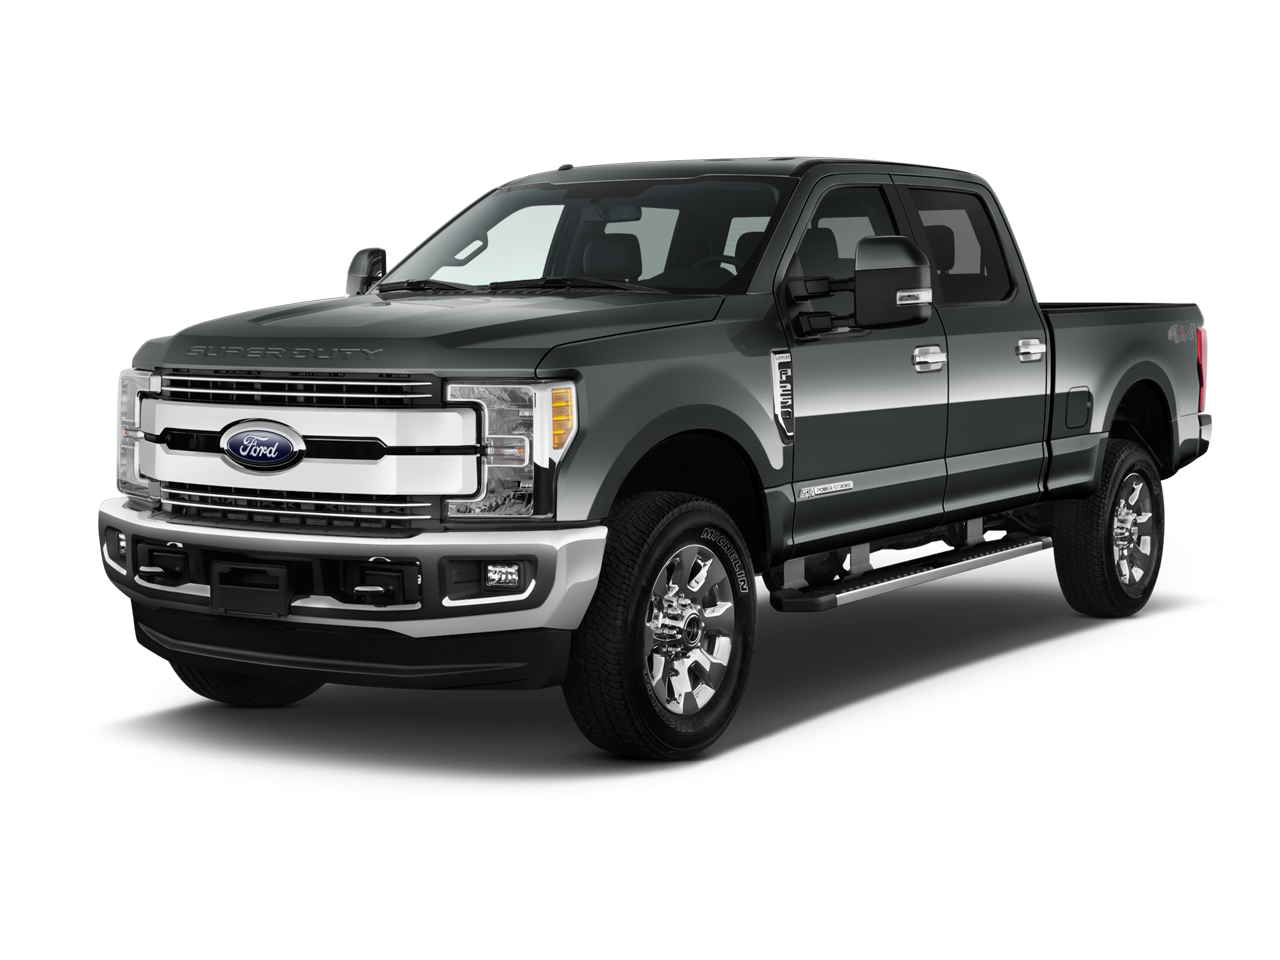 new 2017 ford f 250 super duty lariat near carson city. Black Bedroom Furniture Sets. Home Design Ideas